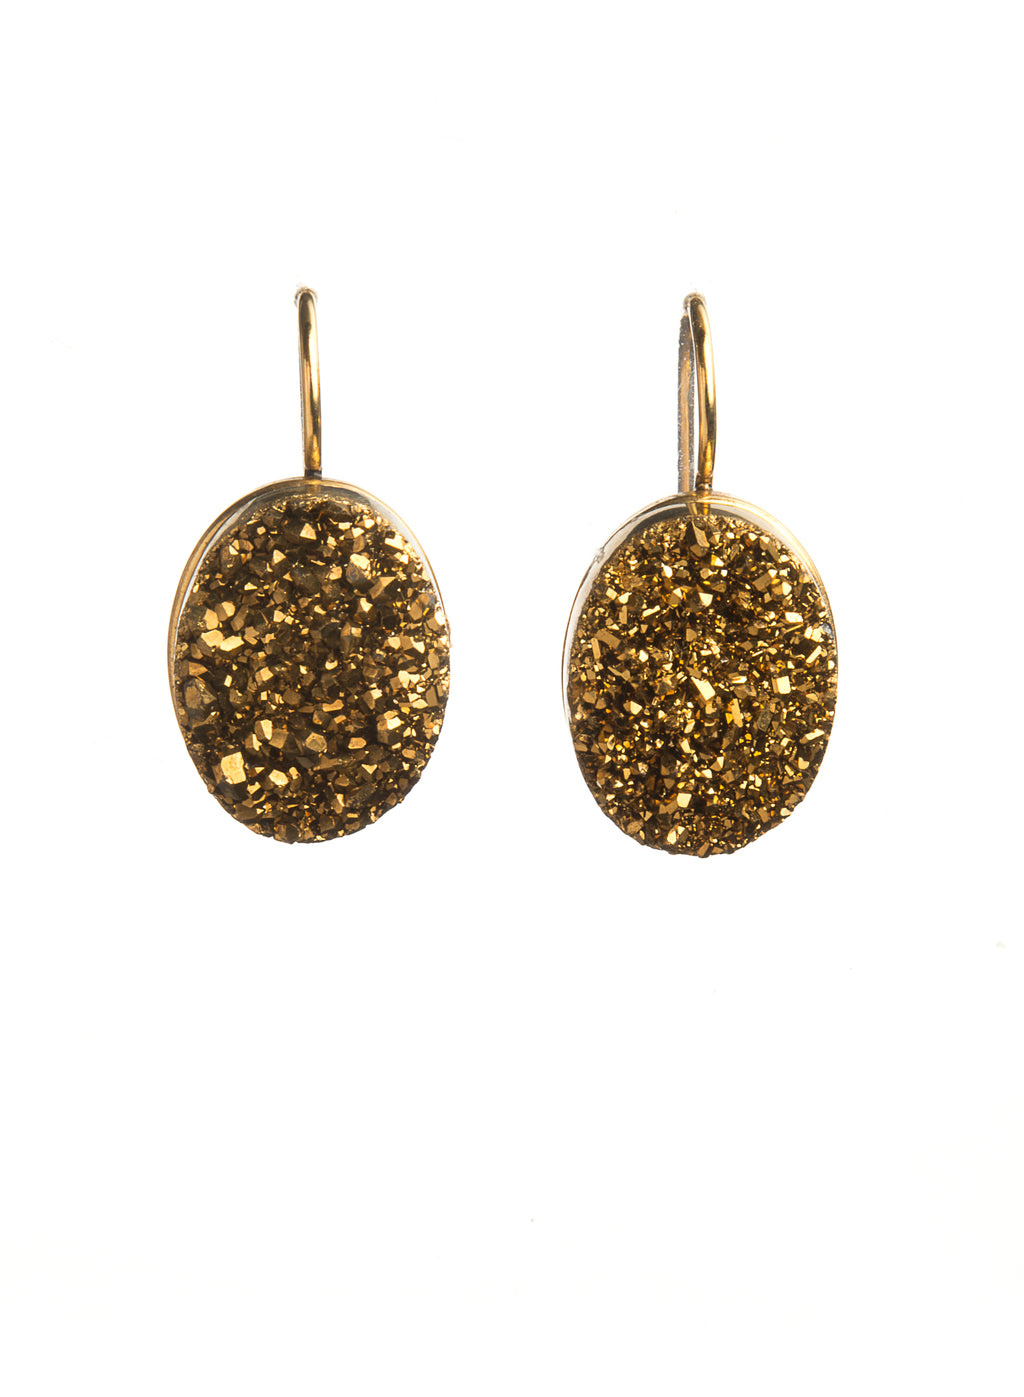 DRUZY EARRINGS MAI - Ava Cadiz